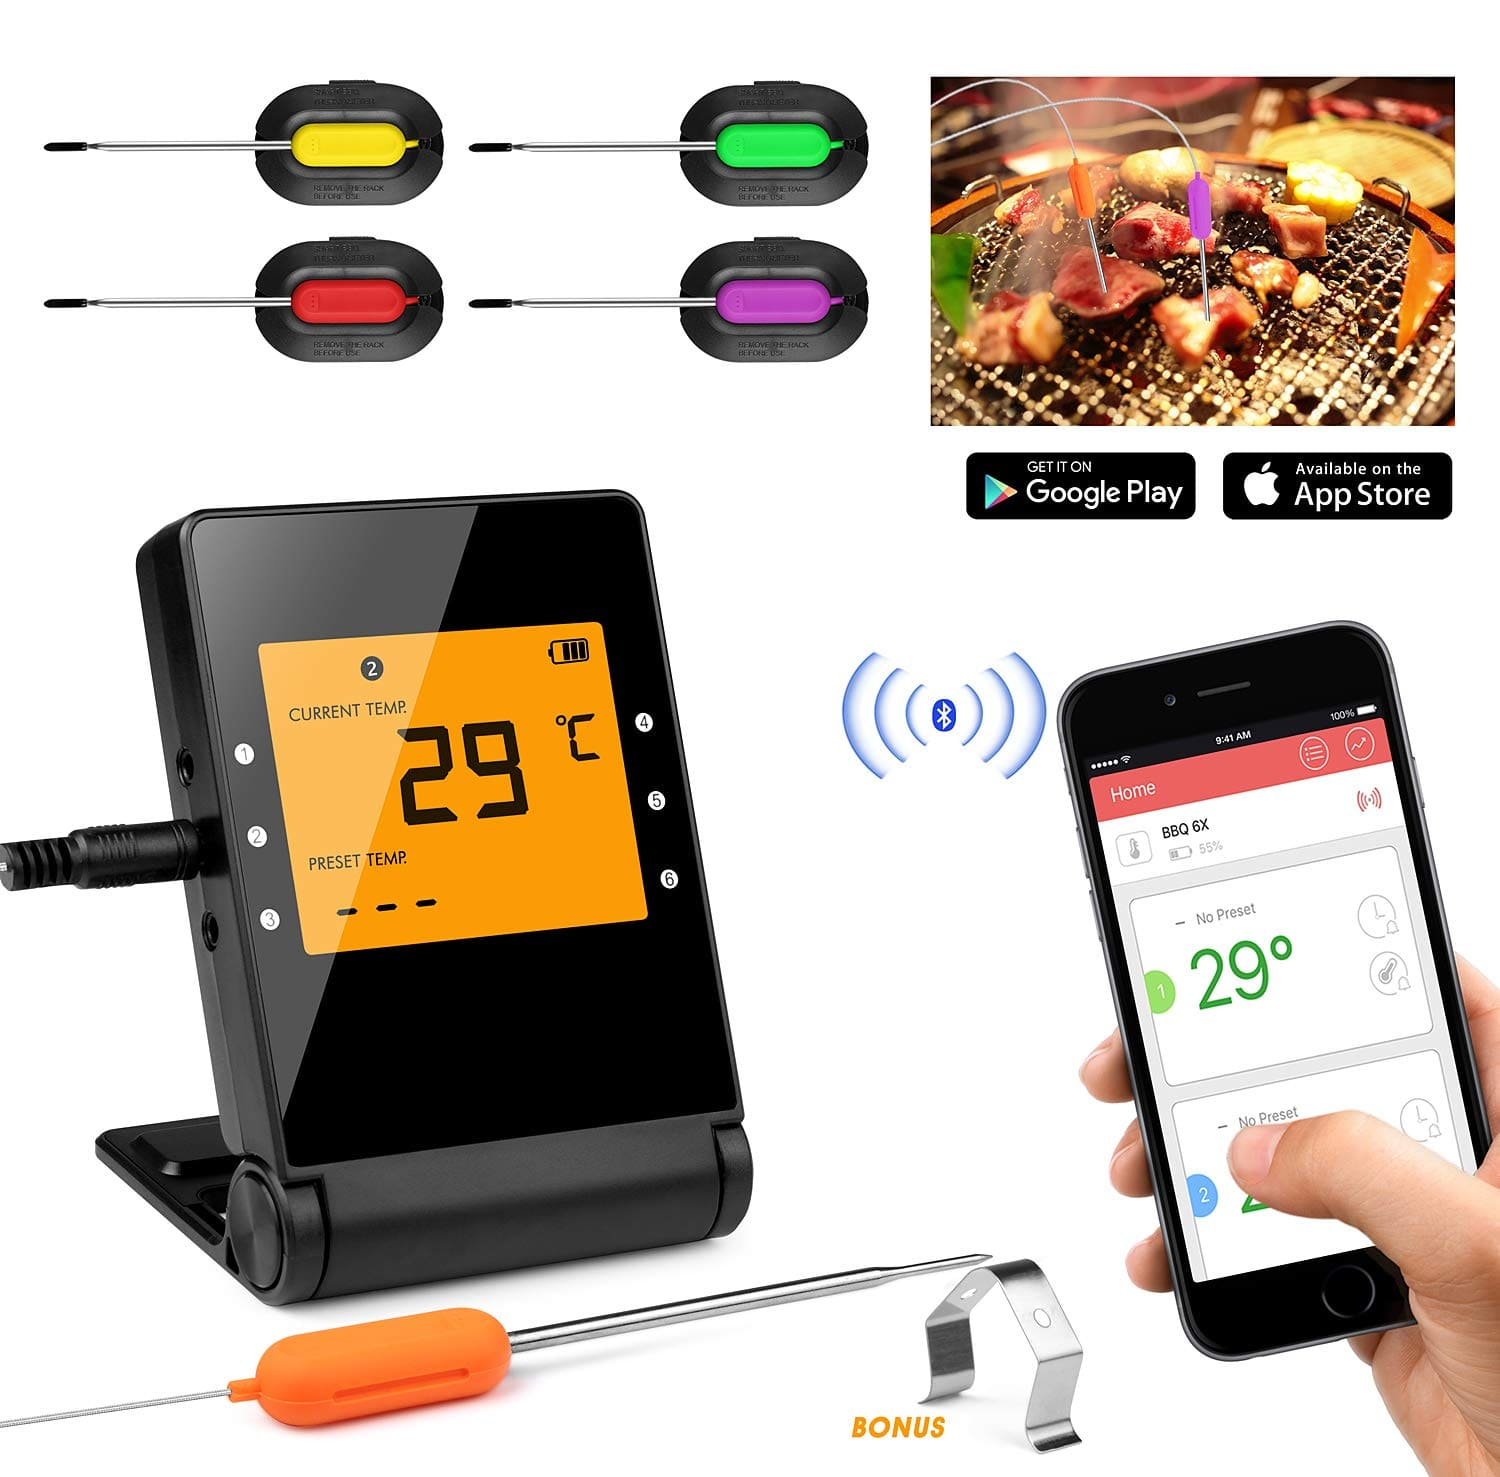 Bluetooth Smartphone Meat Thermometer with 4 Stainless Steel Probes $31.49 + Free Shipping